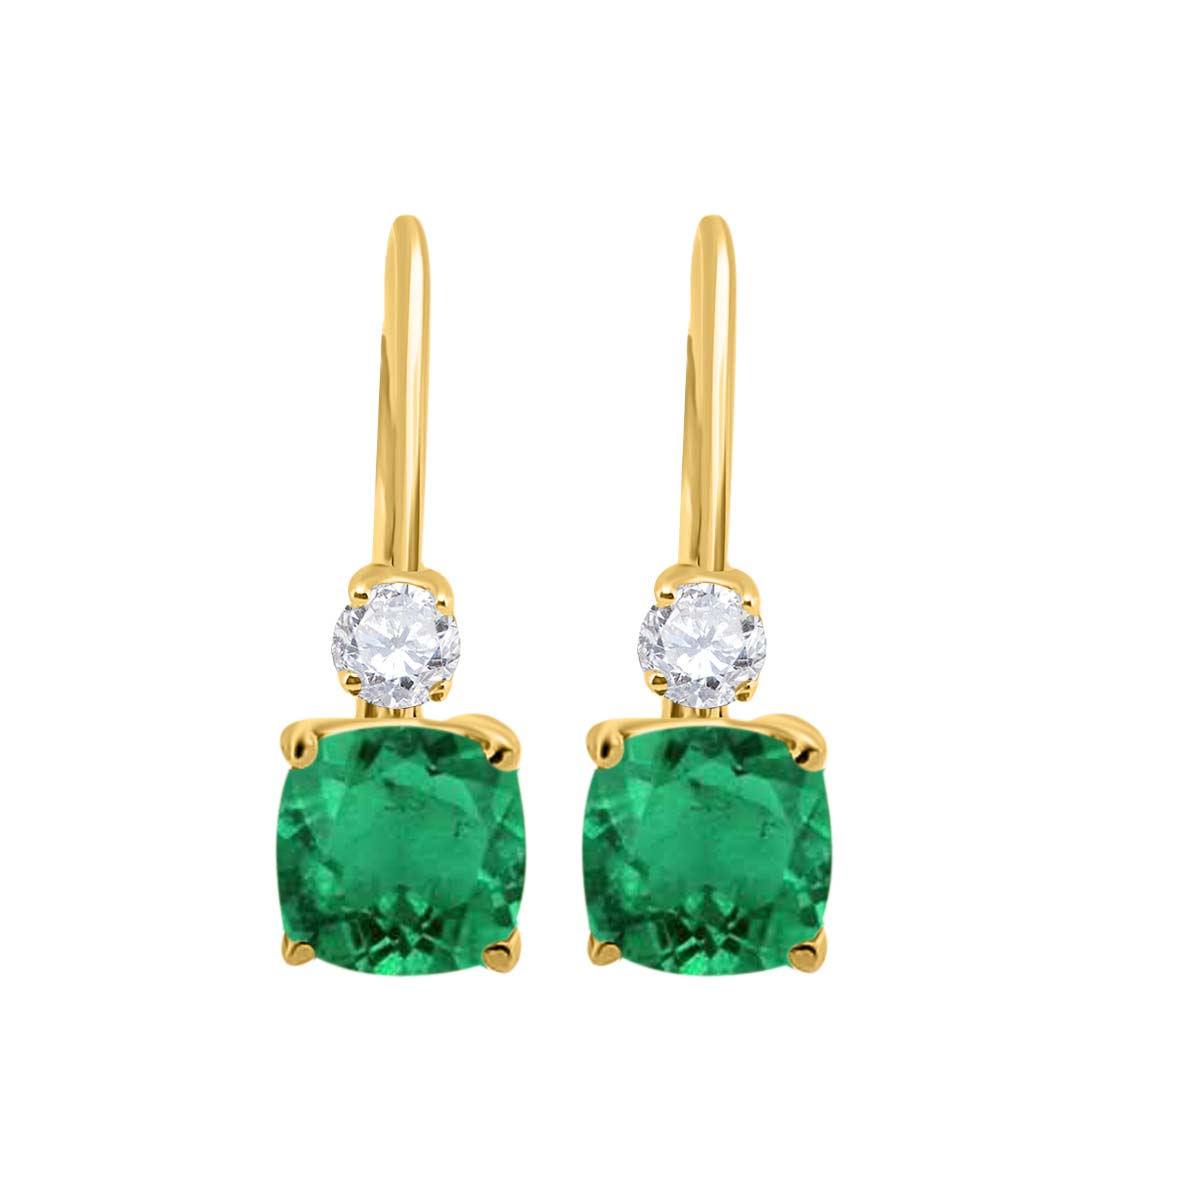 2.65 Carat. Cushion Cut Gemstone And Diamond Leverback Earrings sets for girls or Women Emerald 14K Yellow Gold 4 Prong-Setting Cushion adultsthis is the lovely gift for anniversary